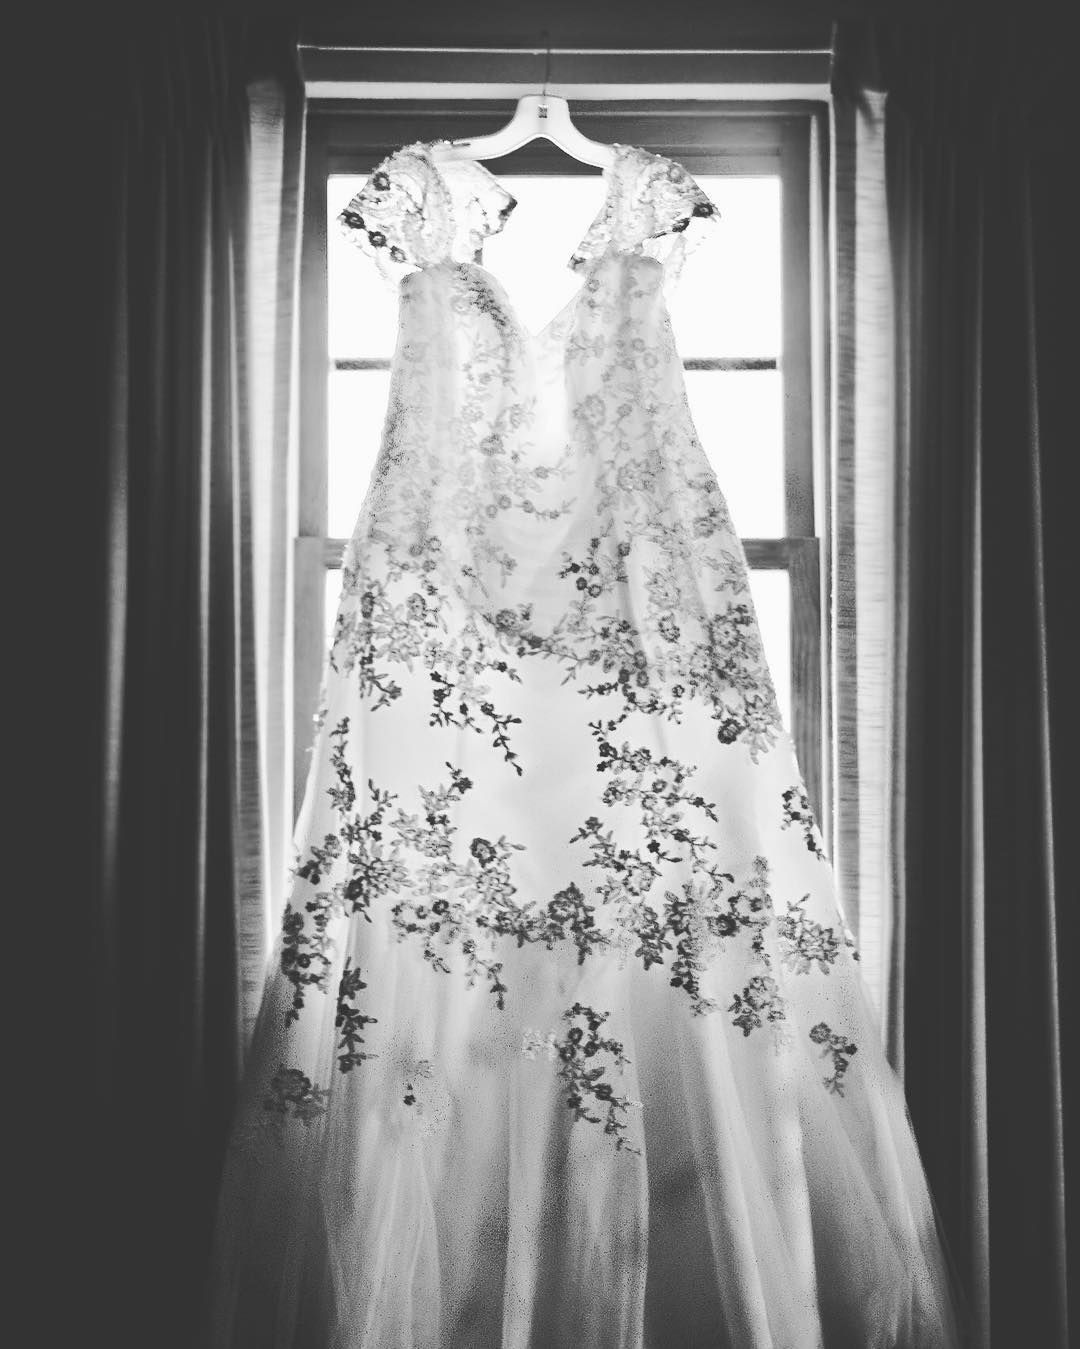 A picture of my dress. I'm absolutely in love with this photo  #wedding #weddingdress #married photo cred @schultzk44 by photographergirl55